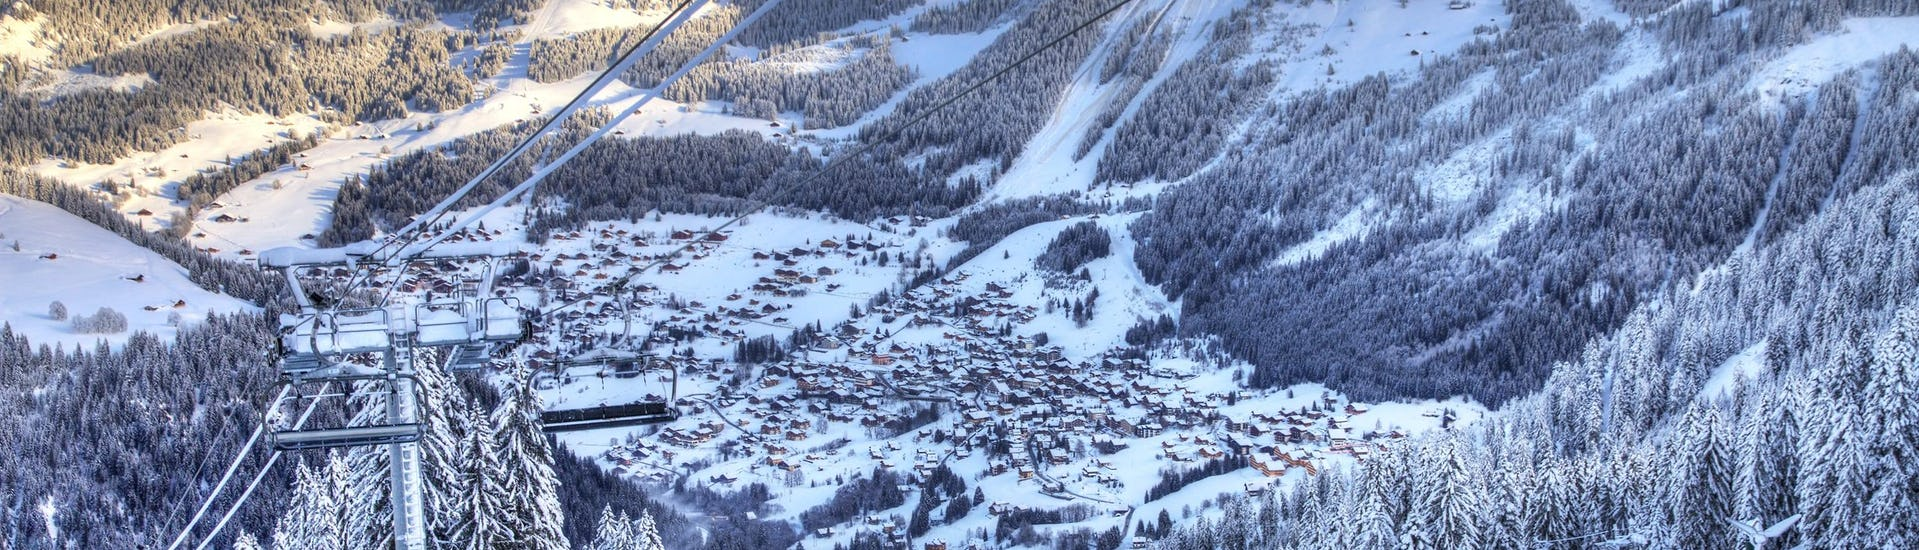 View of the French ski resort of Chatel with its slopes where local ski schools offer a wide range of ski lessons for those who want to learn to ski.